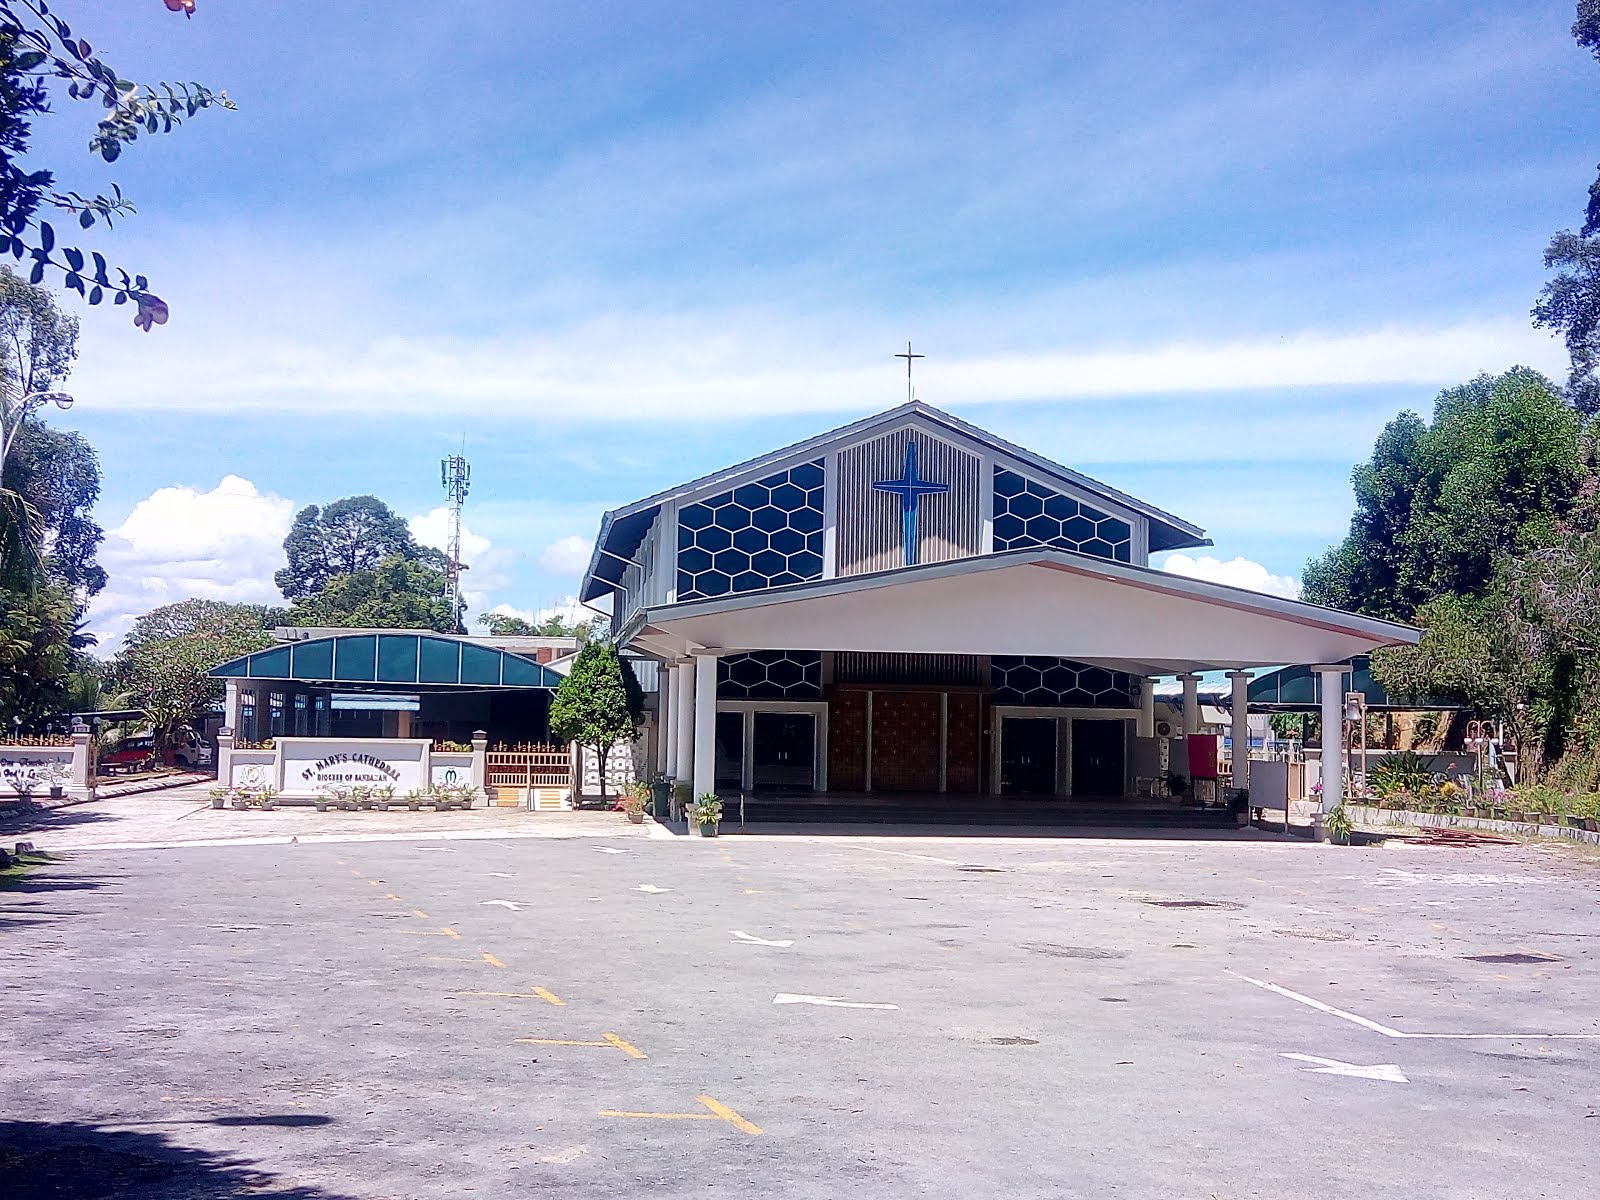 ST. MARY'S CATHEDRAL SANDAKAN